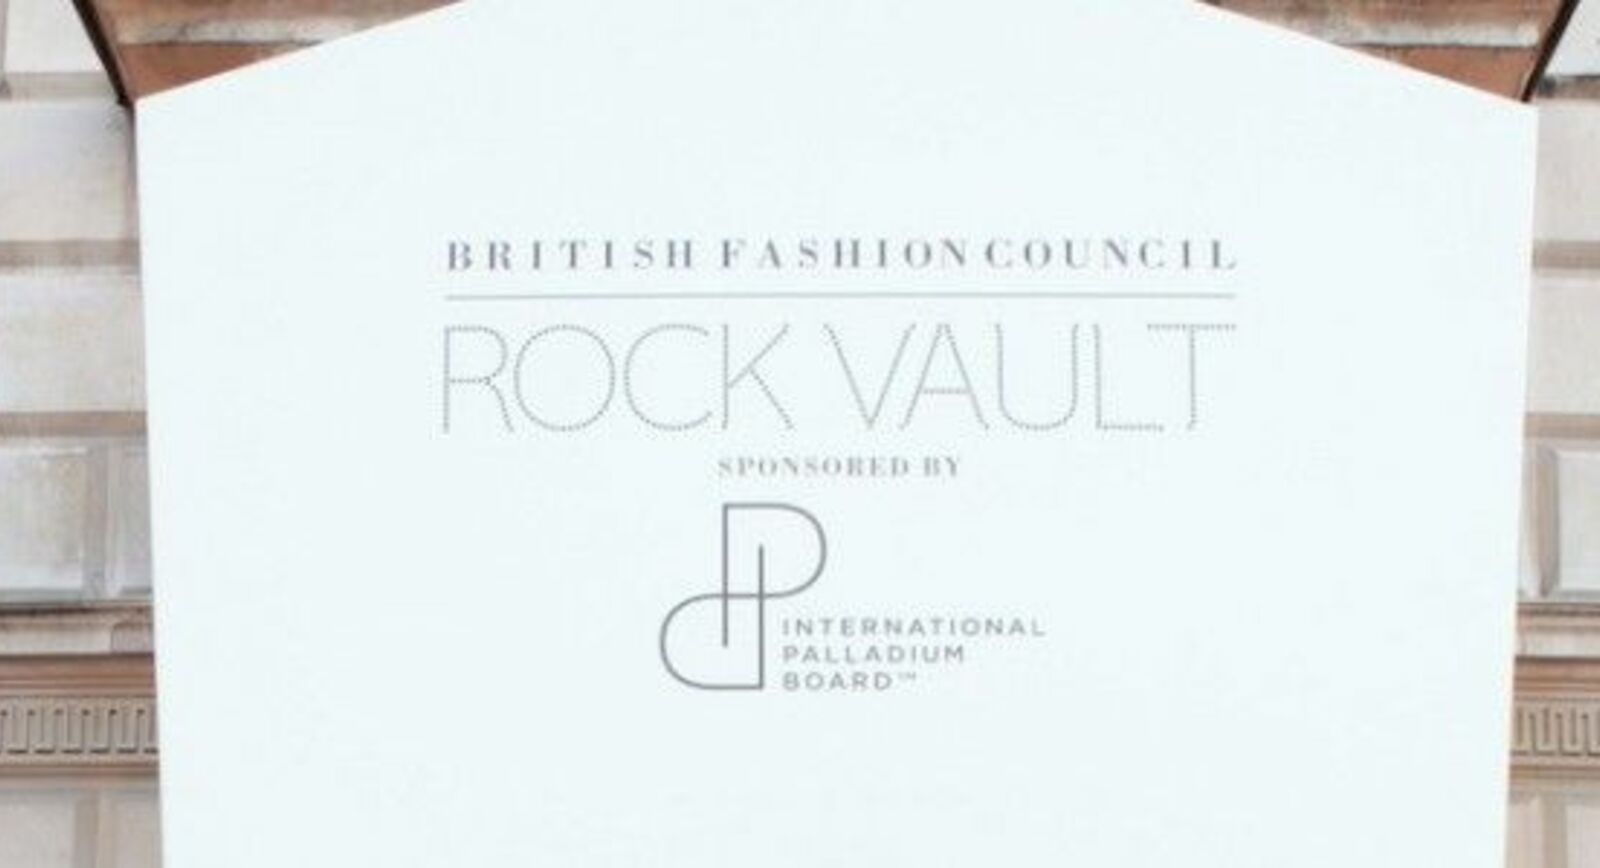 London Fashion Week 2013: Report from the Rock Vault